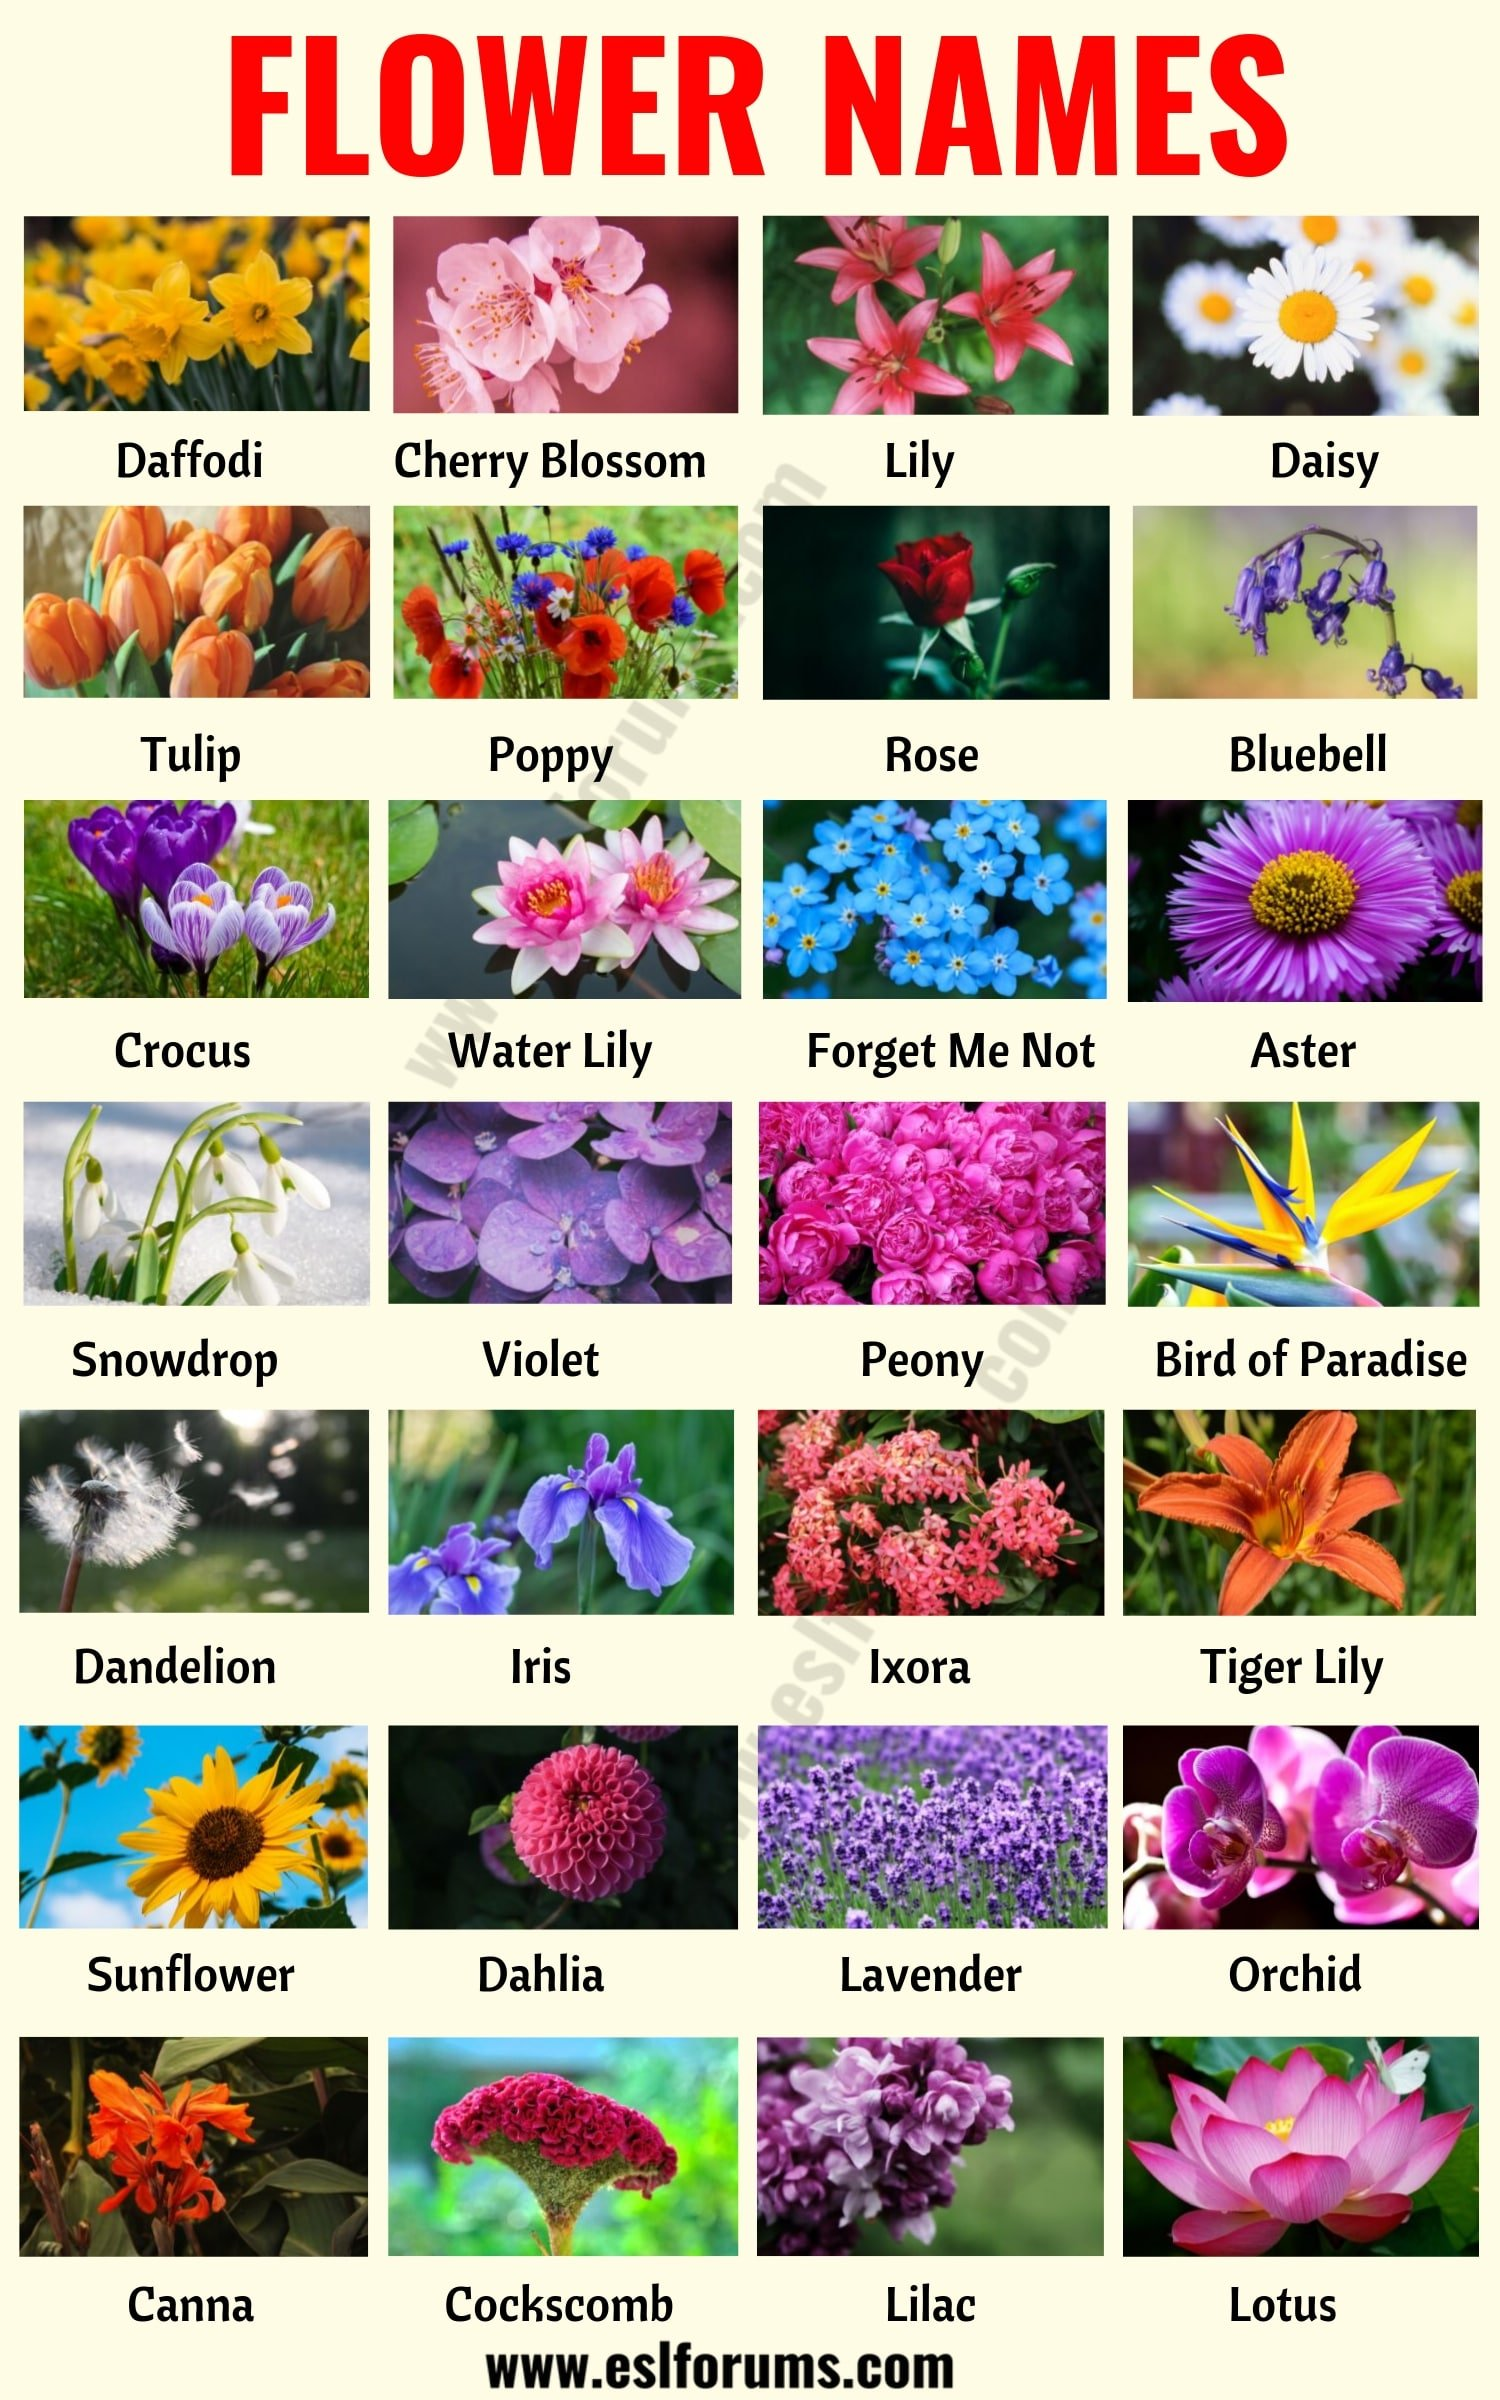 Flower Names: List of 25+ Popular Types of Flowers with the Pictures